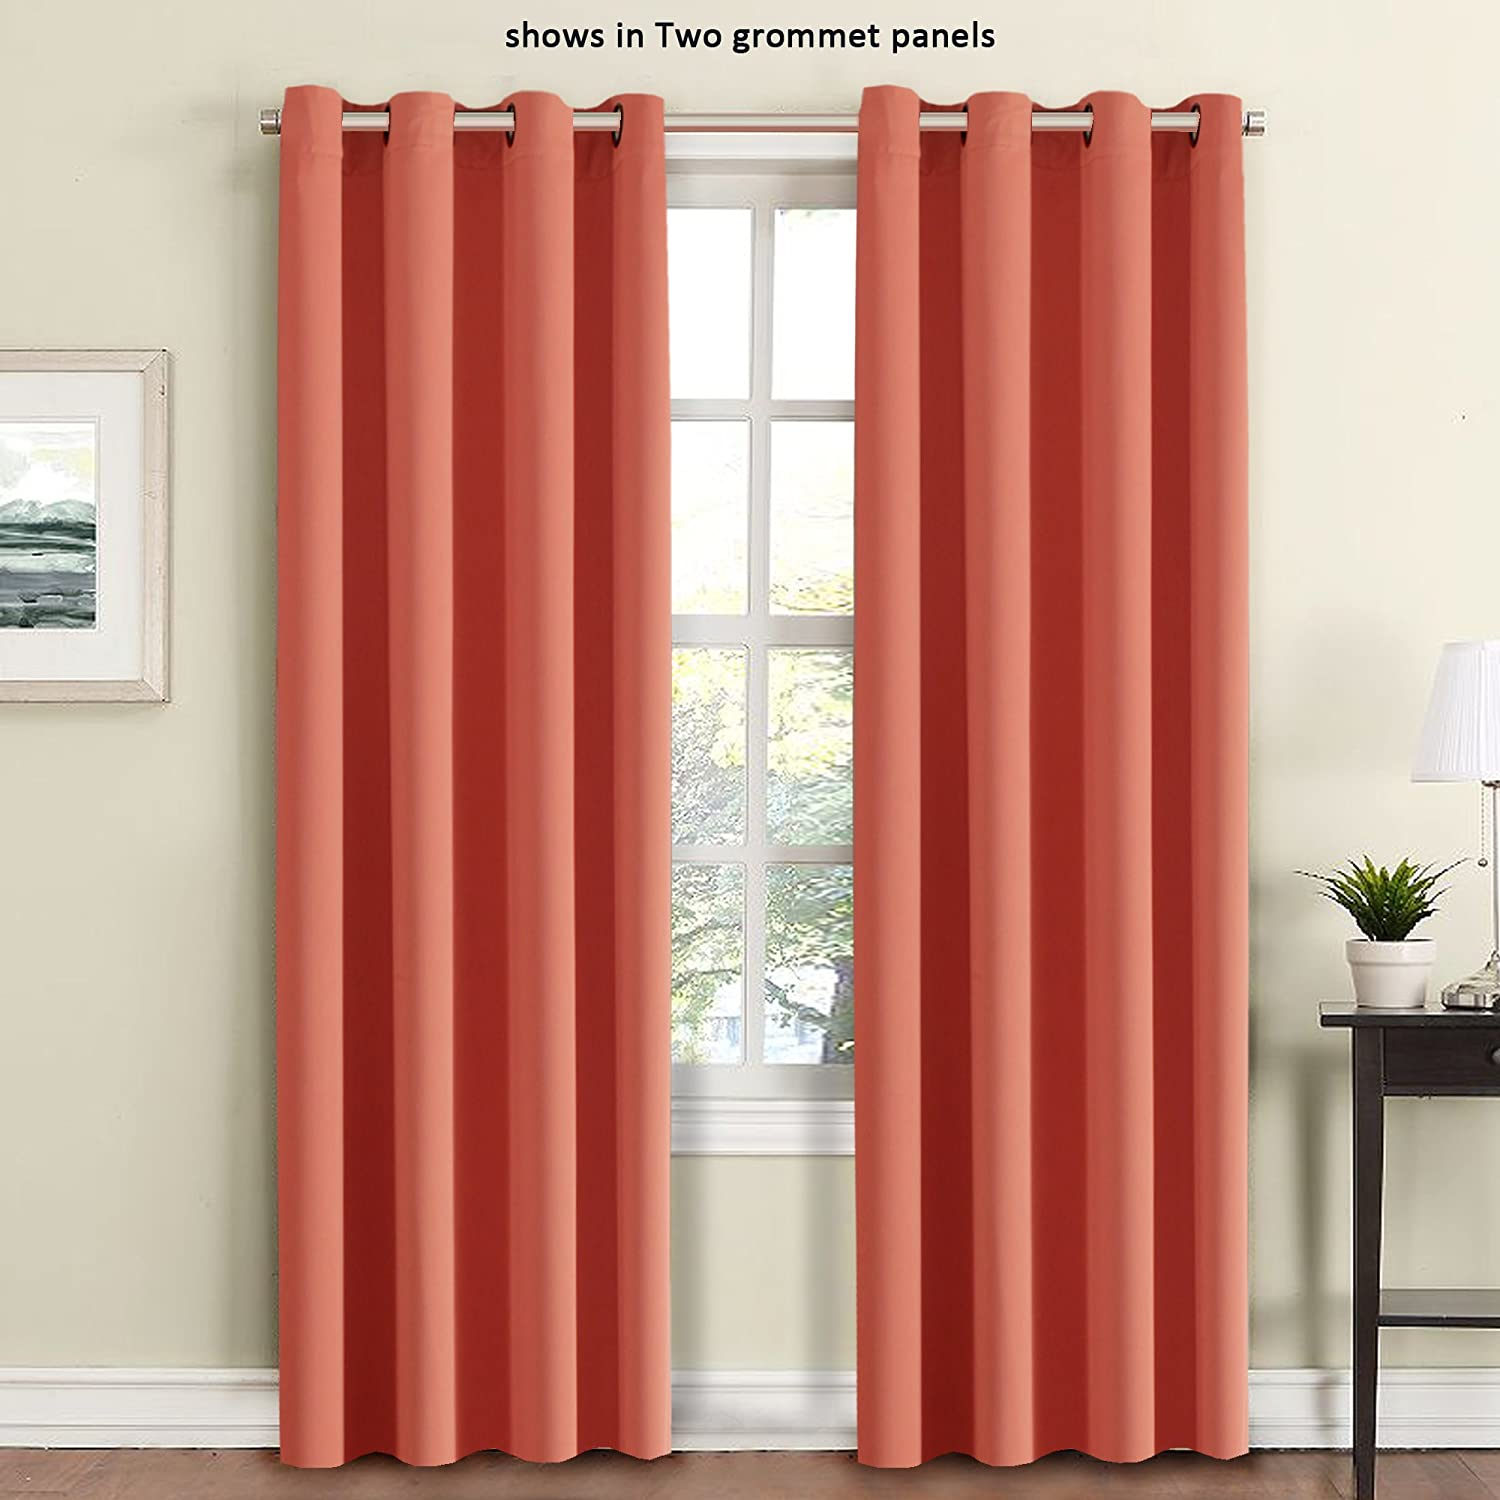 FlamingoP Thermal Insulated and Heating Against Grommet Top Blackout Curtains/Drapes, One Panel Coral